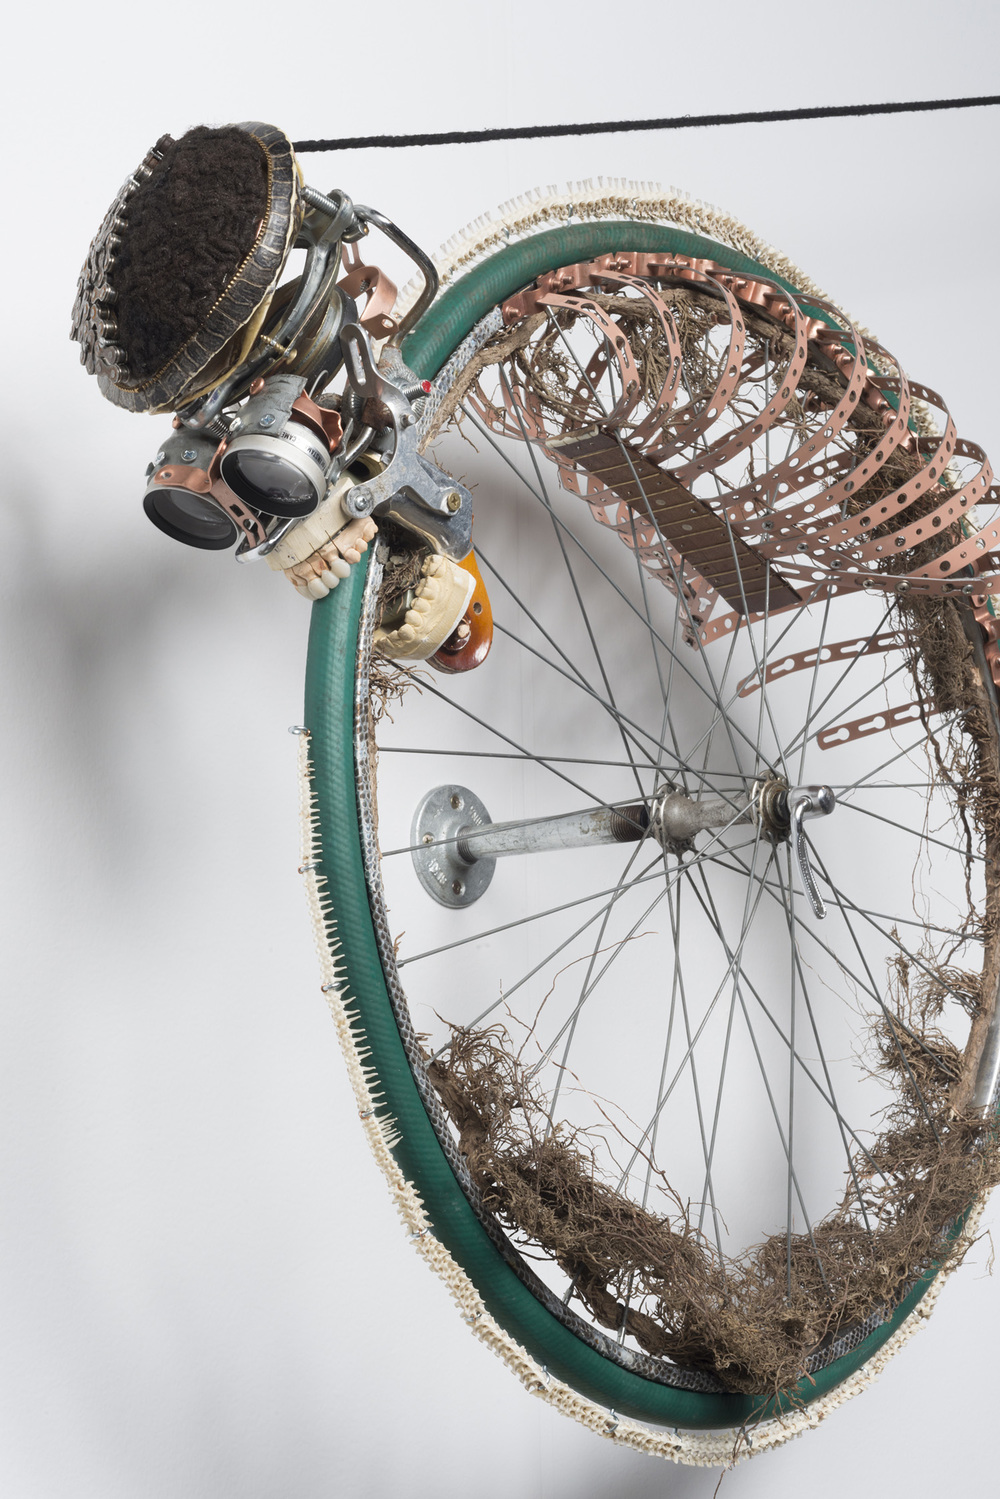 Lorna Williams-Ouroboros-2013-hair, plumbing hardware, violin parts, photography lenses, snake vertebrae, bike wheel, hose, ukulele neck, bike chain, plaster teeth, bike seat, speaker, snake shedding, root, rope, cement-88x60x13-detail-1.jpg